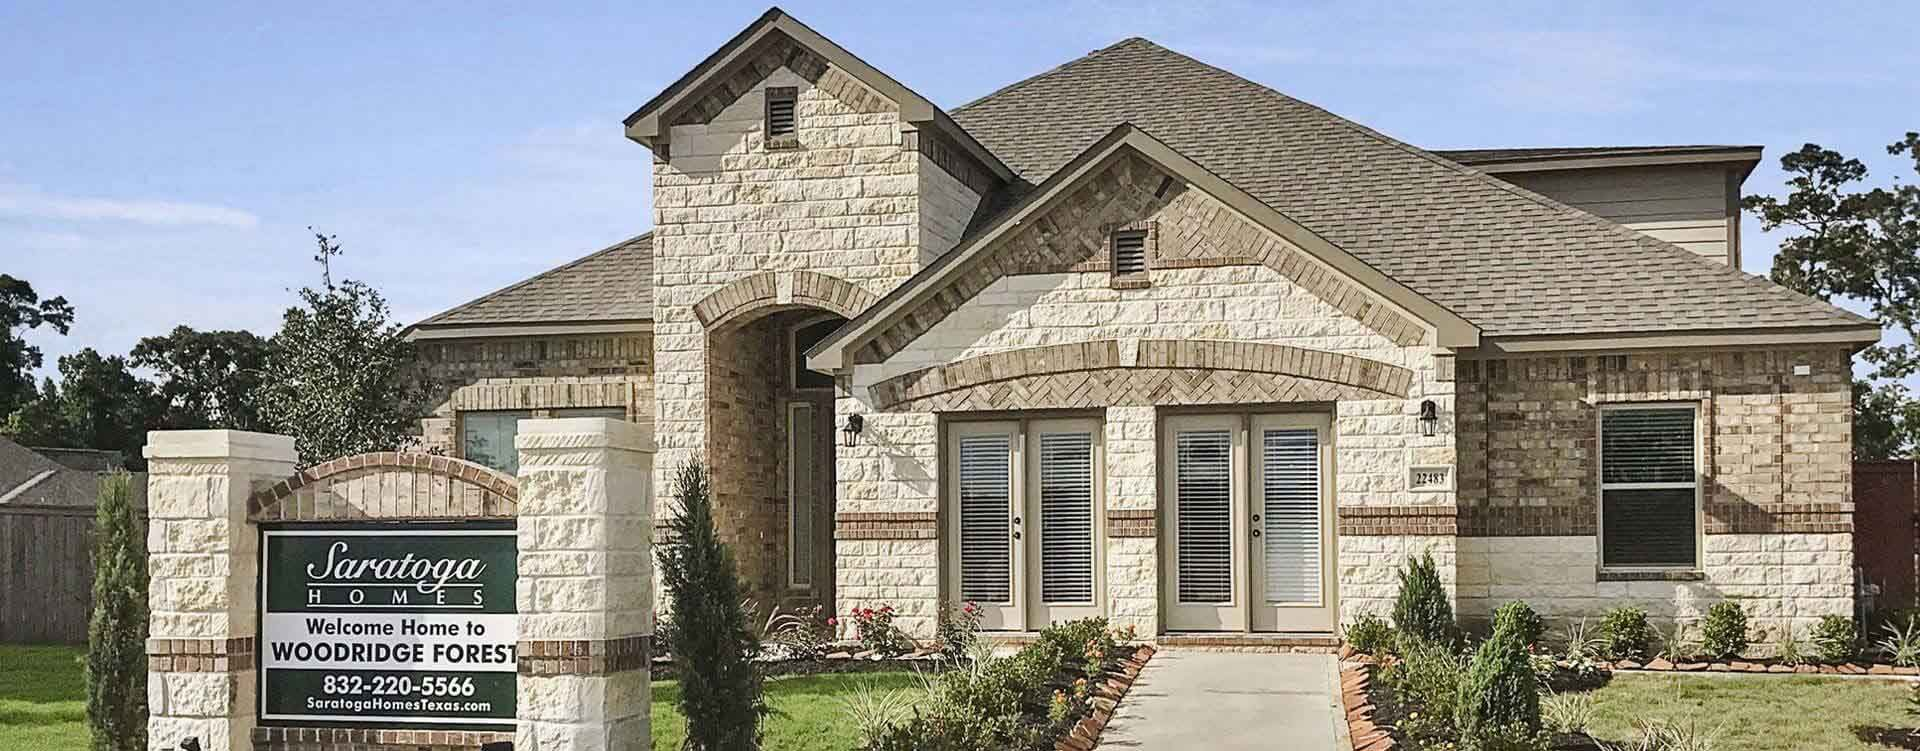 Humble Texas development Woodridge Forest